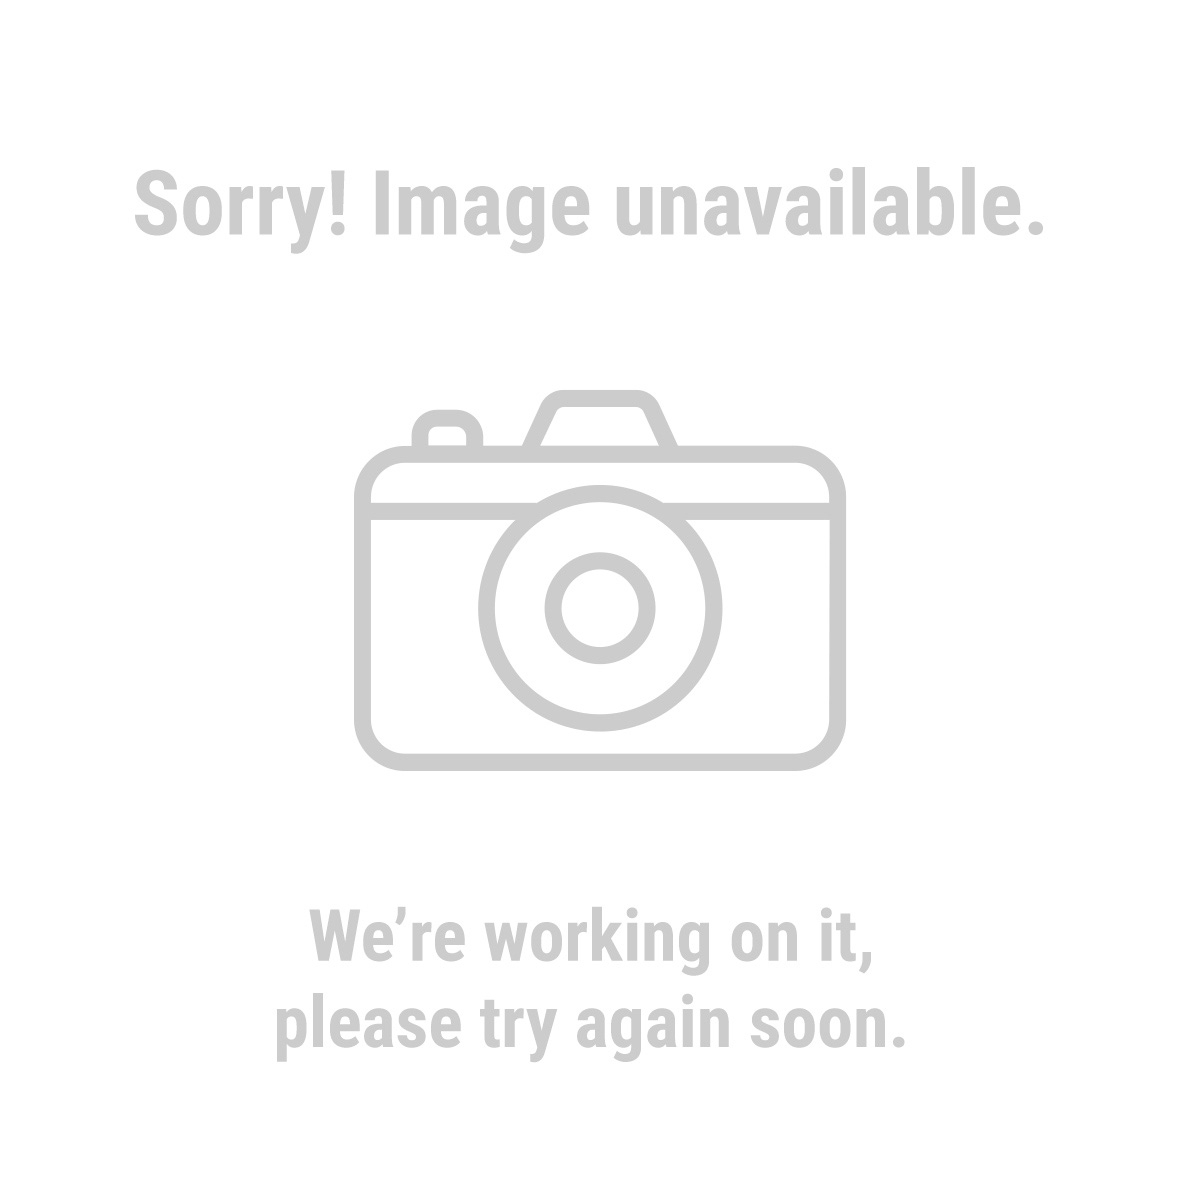 2 Piece Rubber Pads for Jack Stand